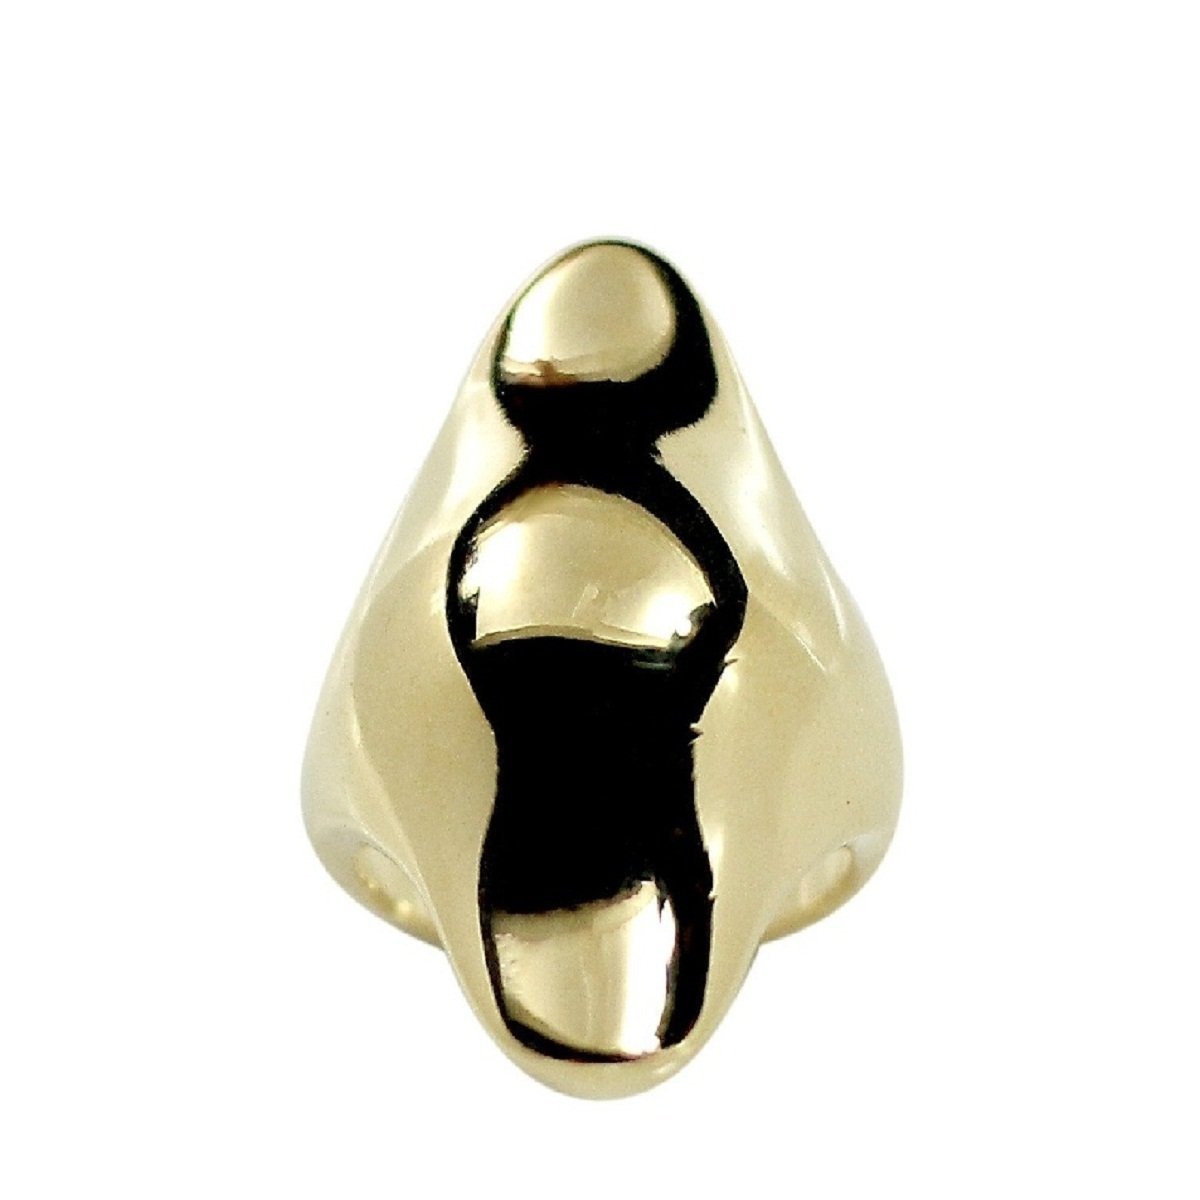 Mini Armor Shield Inspired Gold Tone Knuckle Ring